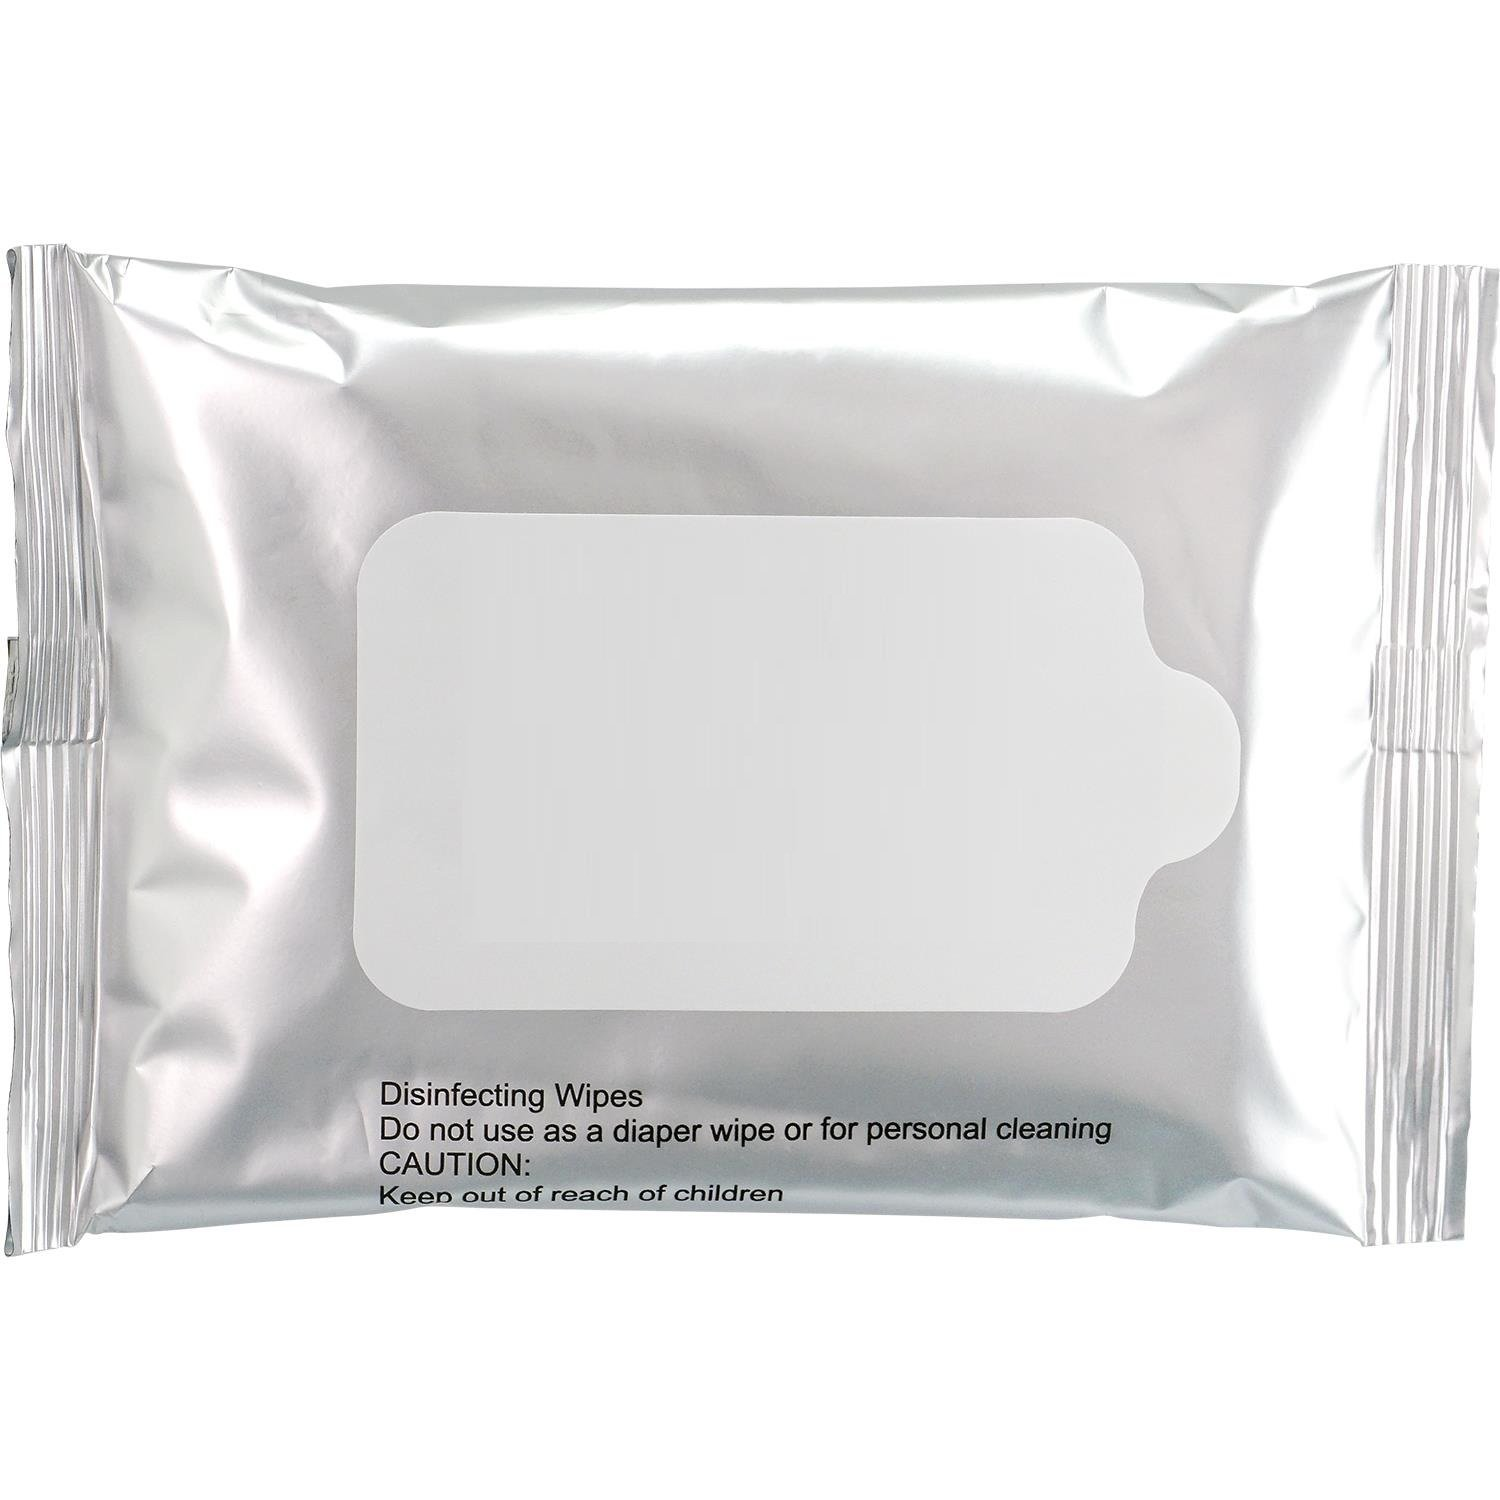 IN STOCK TODAY - Hand Wipes